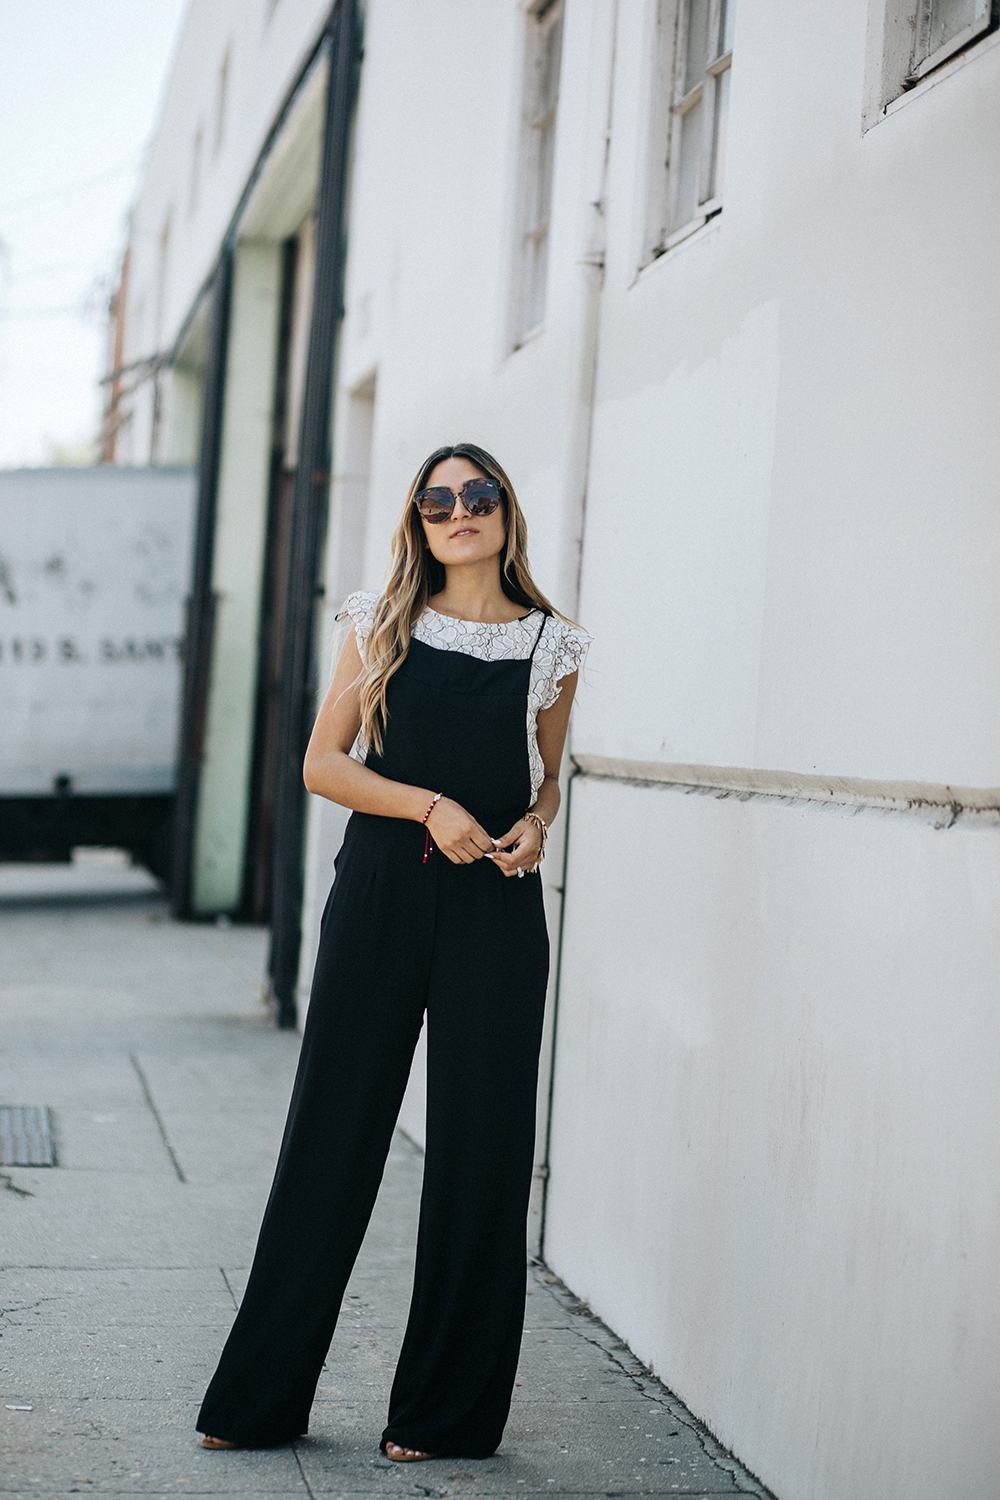 Dressed Up | Paper Crown, All Dressed Up | Paper Crown, paper crown, lauren conrad, jumpsuit, blouse, dressy, dressed up, ootd, melrodstyle, la blogger, latina blogger, hispanic blogger, mexican blogger, blogger, style, street style, dtla